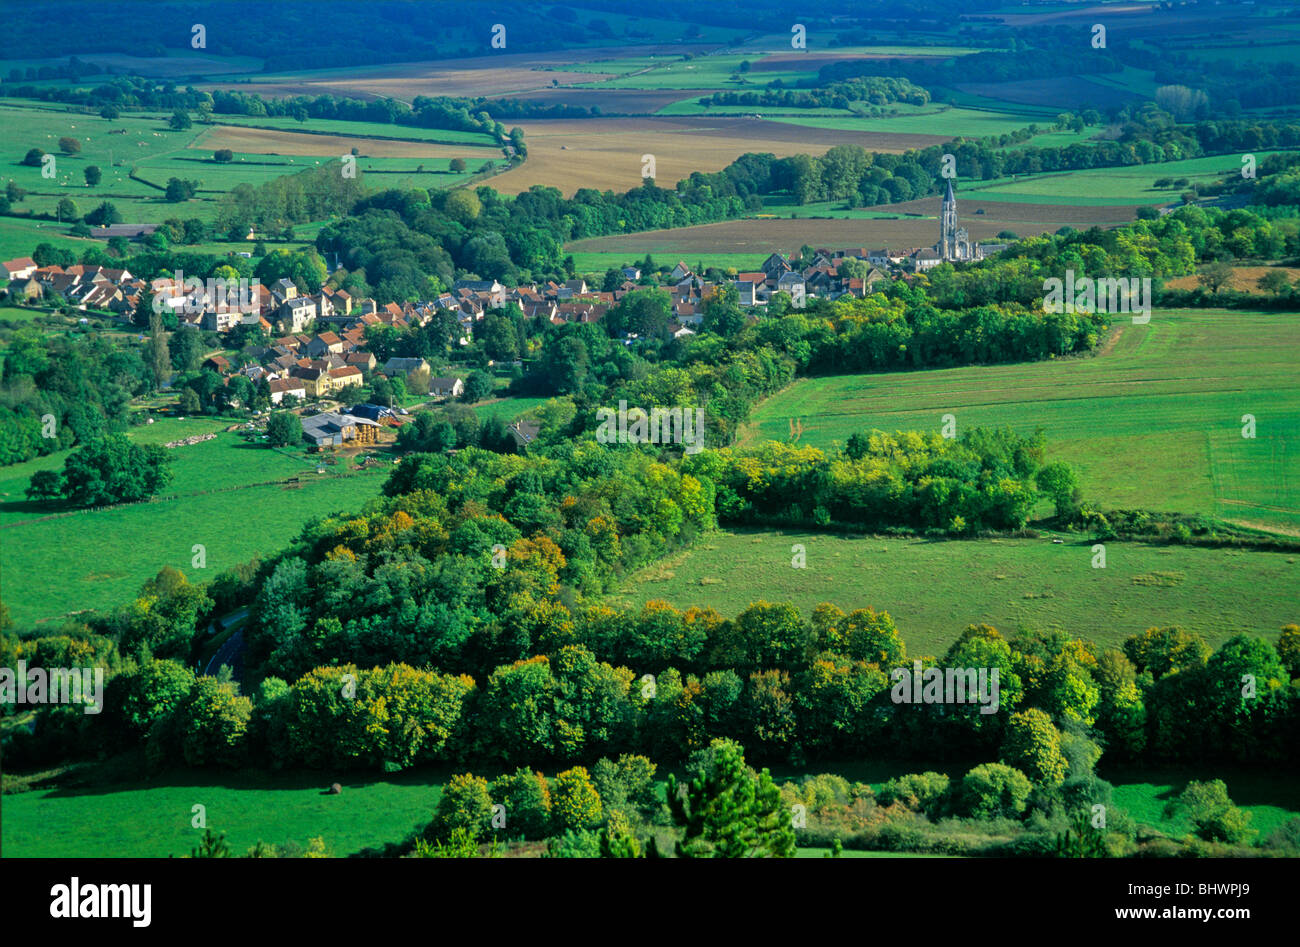 Village of St. Pere in French countryside, Cure Valley, near Vezelay, Burgundy, France - Stock Image